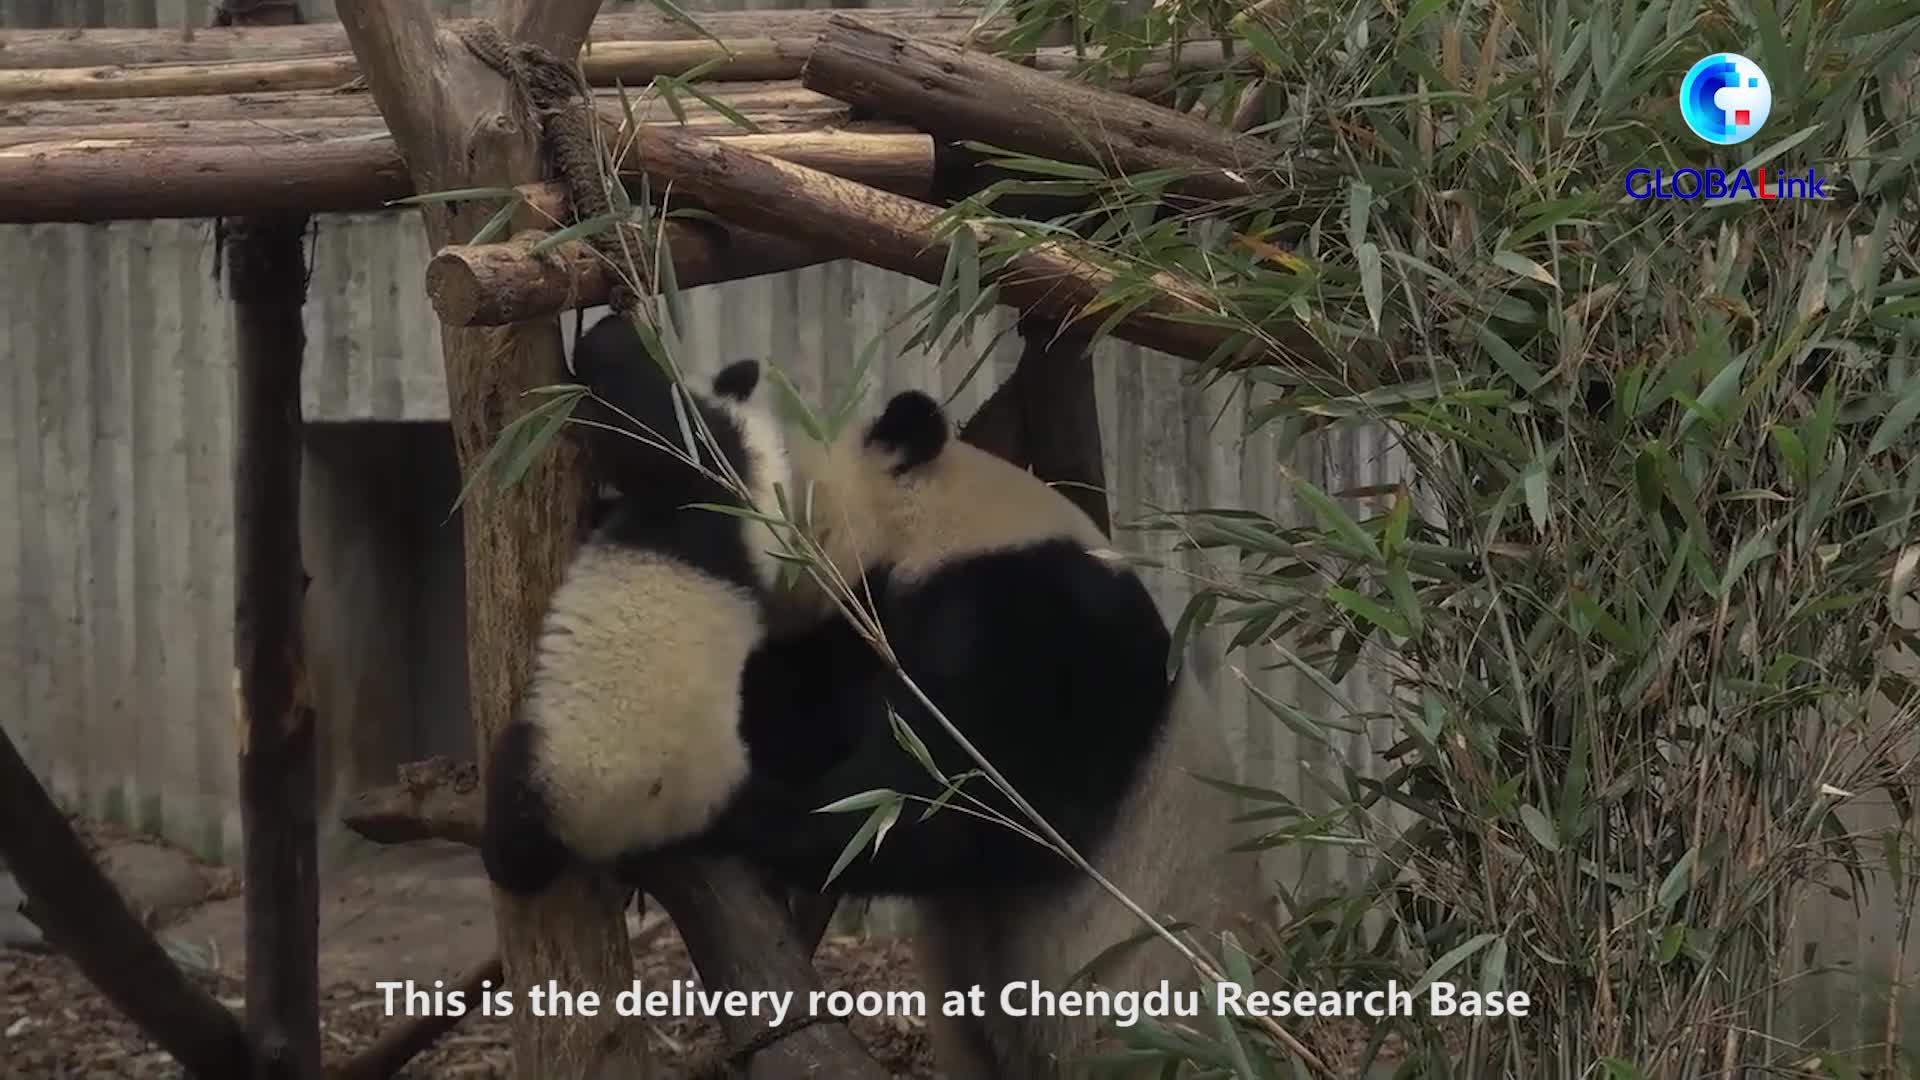 From Sichuan to Macao, pandas are always welcome